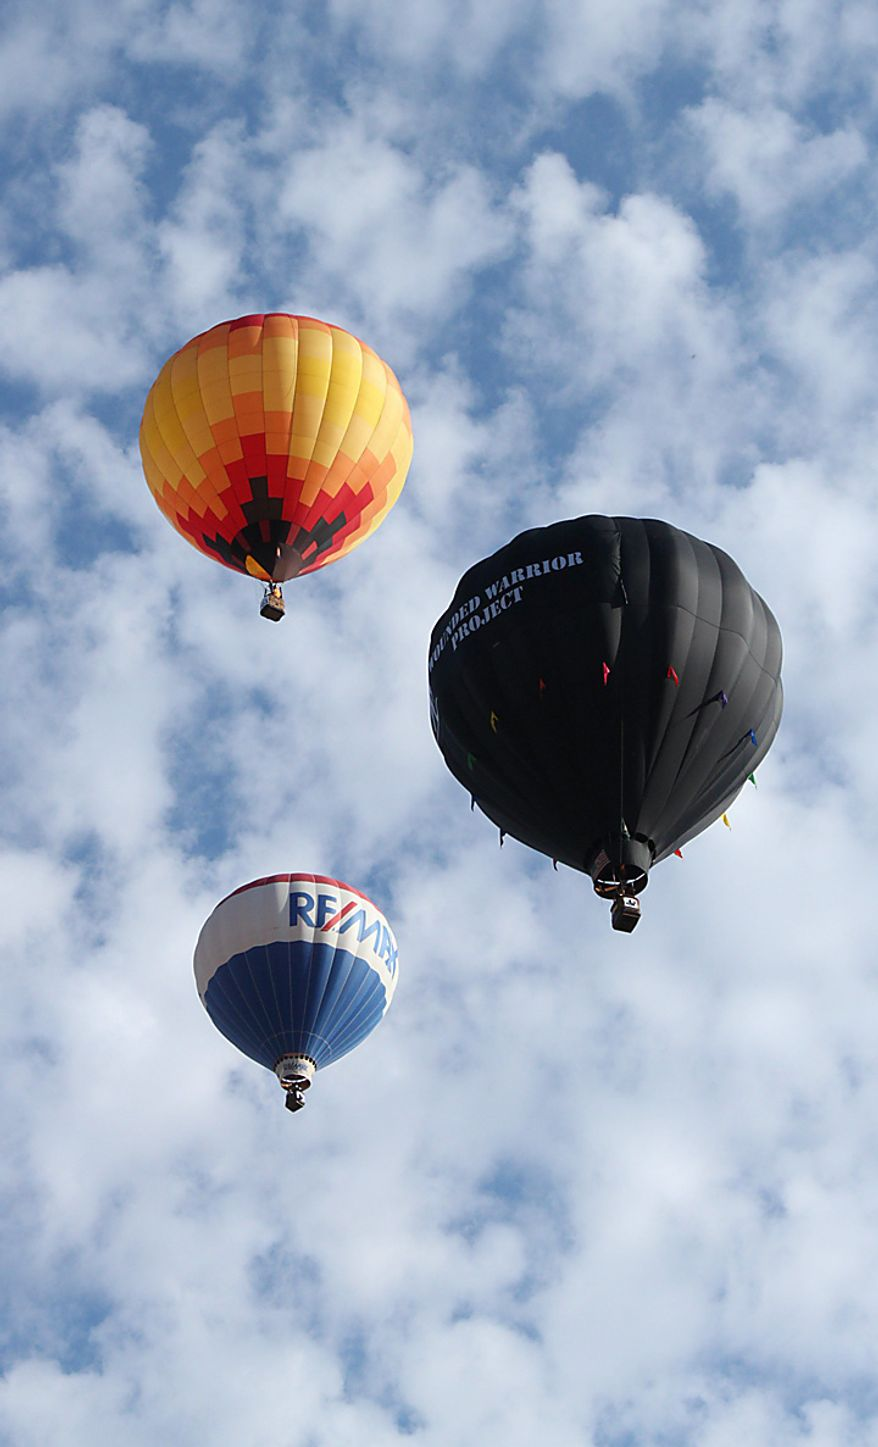 Hot air balloons fill the sky during the Albuquerque International Balloon Fiesta in Albuquerque, N.M., on Saturday, Oct. 2, 2010. Many balloonists participating in the event are hopeful that missing American pilots Richard Abruzzo and Carol Rymer Davis will be found. The pair went missing over the Adriatic Sea on Wednesday during a European gas balloon race. (AP Photo/Susan Montoya Bryan)